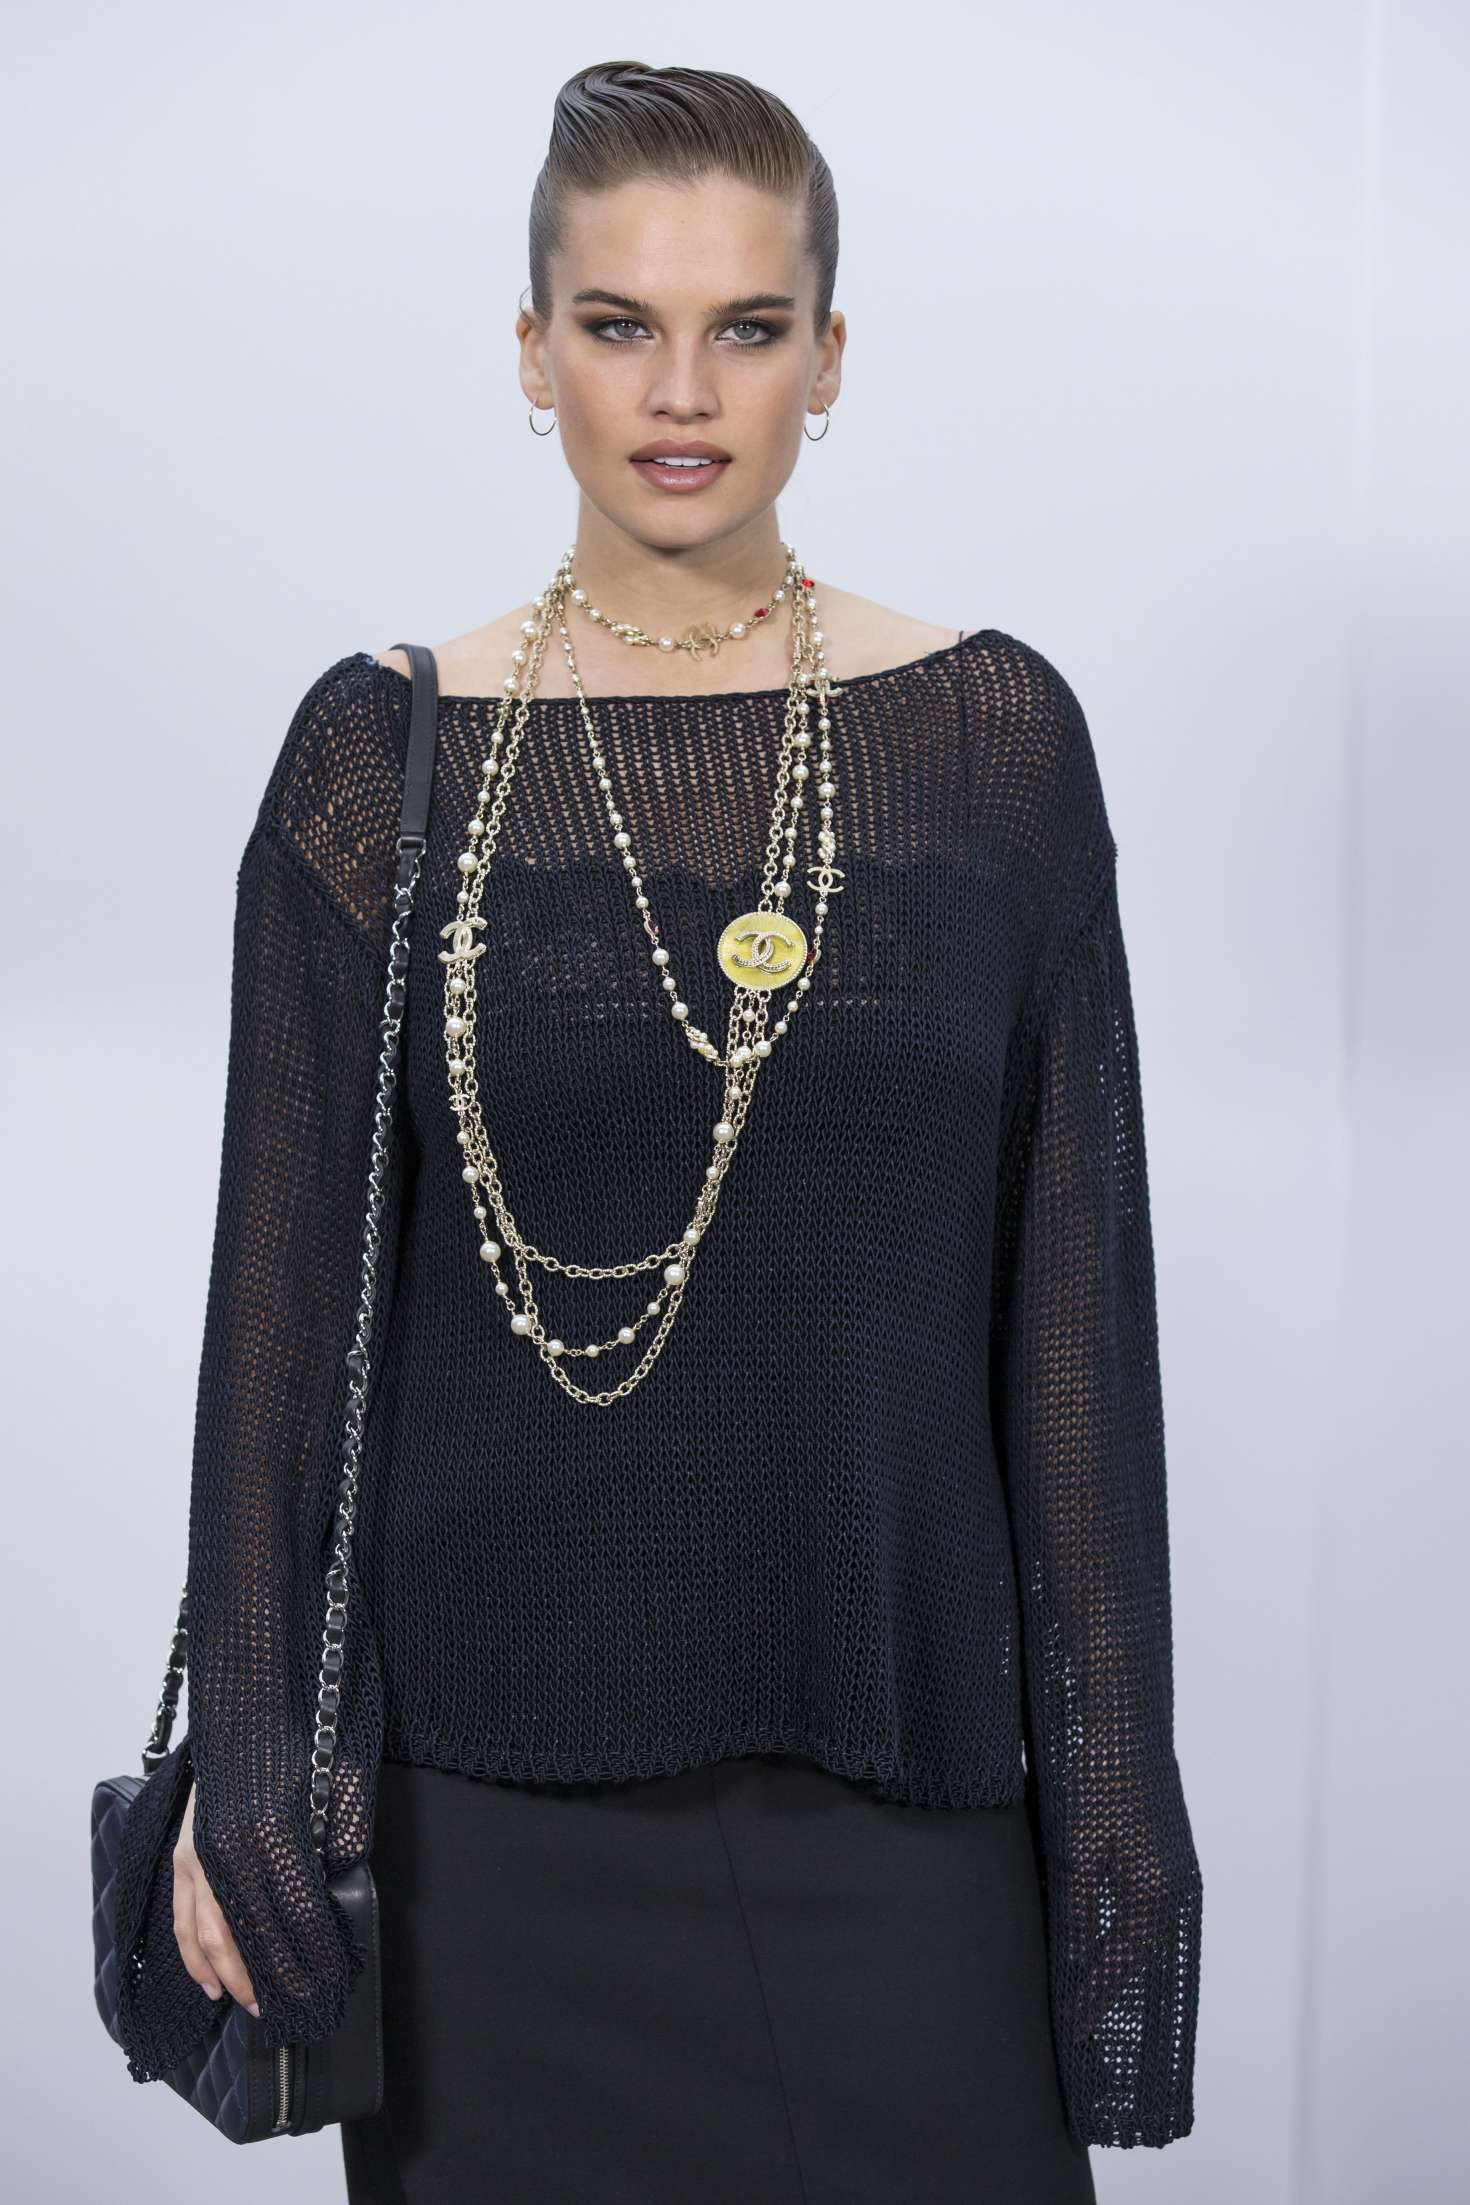 Stormi Henley - Chanel Show at 2017 PFW in Paris Lindsay Lohan